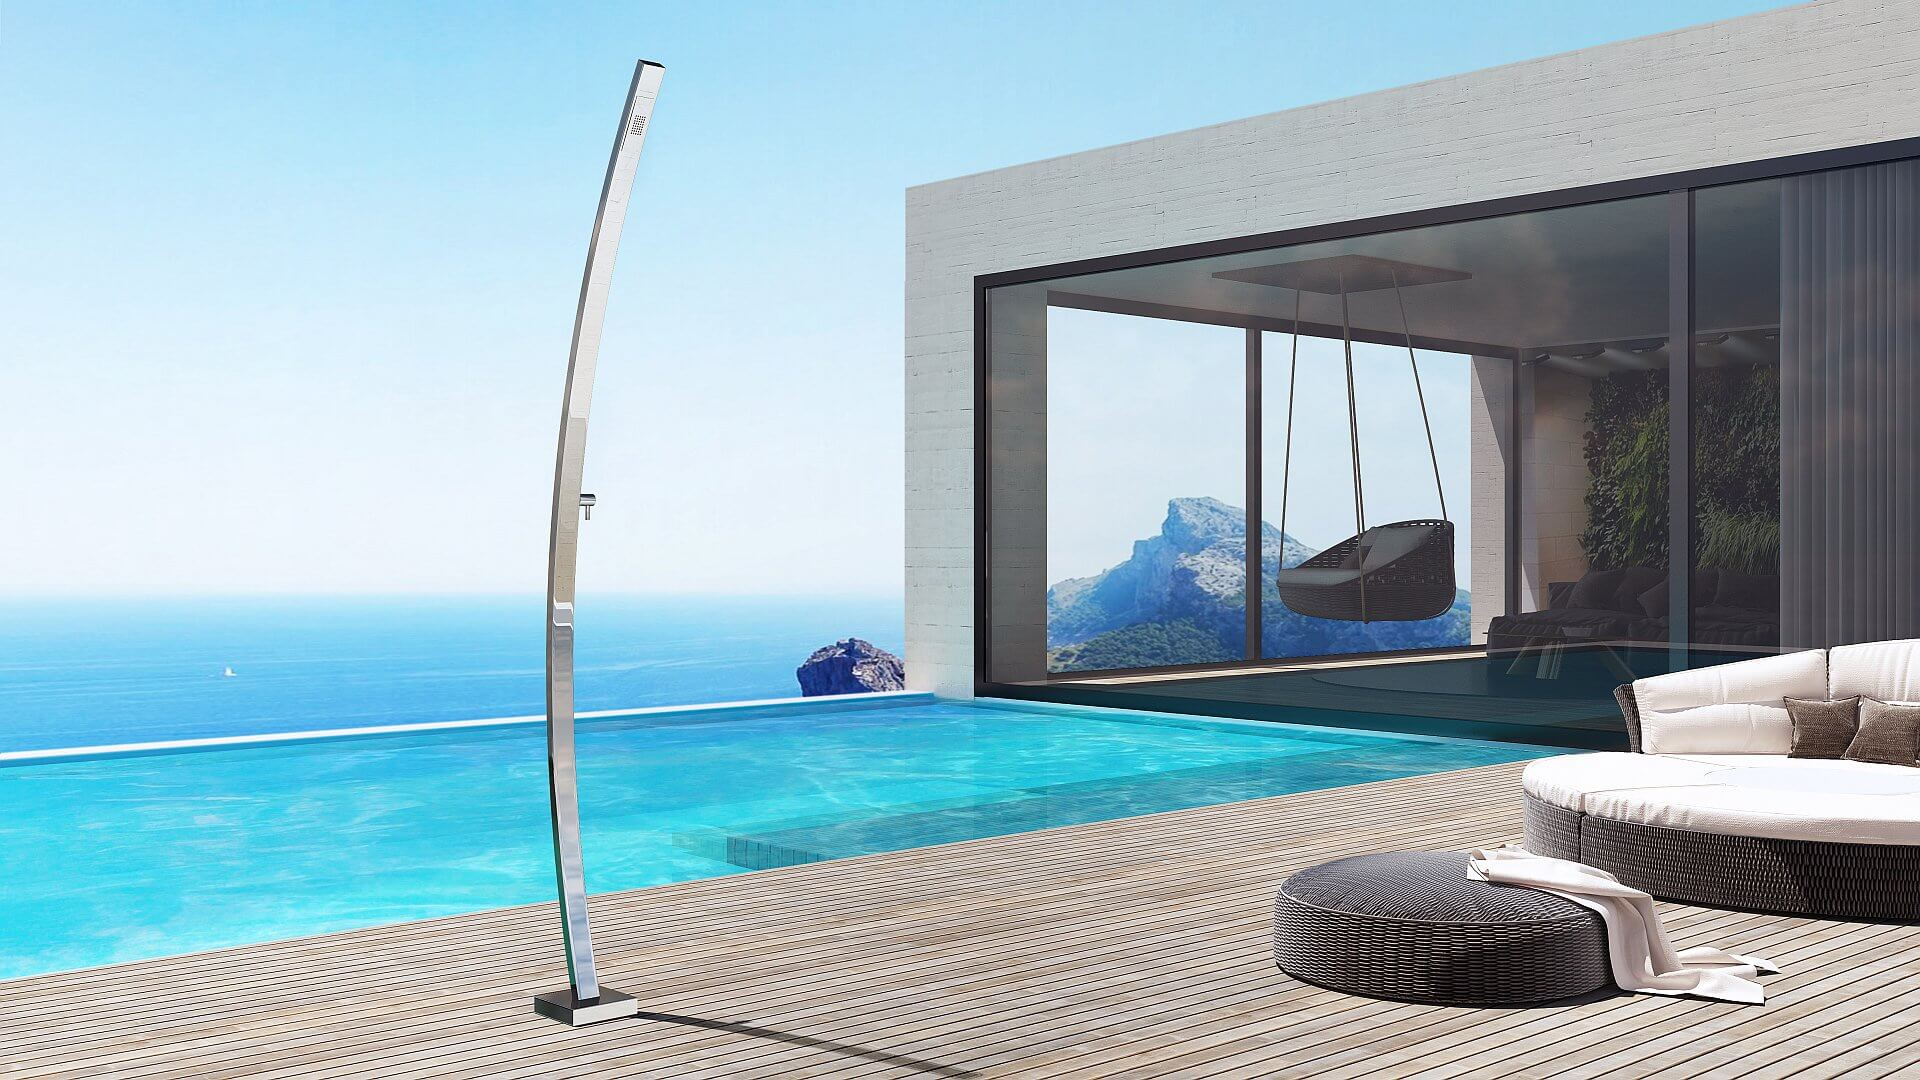 Motivo R - Nautical outdoor shower, a top design shower for outdoor made with luxury